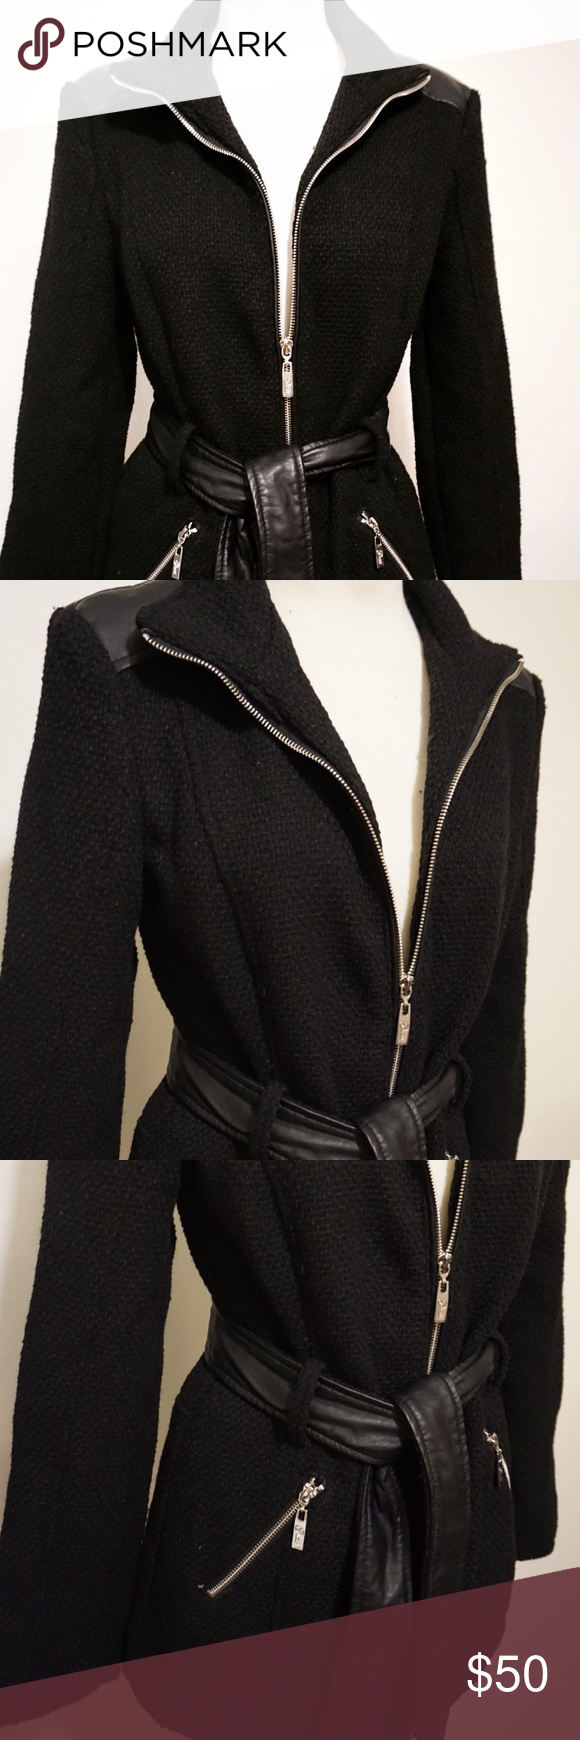 🌈NWT! Black boucle coat by Guess! This trend-forward boucle coat will take you through the cooler season in style. Faux-leather panelling makes a mega modern statement.  Boucle woven coat. Stand collar. Long sleeves.  Faux-leather shoulder panels. Two zipper pockets at front. Detachable waist belt with faux-leather trim.Silver-tone zipper closure. Lined.Shell: 59% Polyester, 41% Wool. Lining: 100% Polyester. Contrast: 100% Polyurethane. NWT! Guess Jackets & Coats Trench Coats